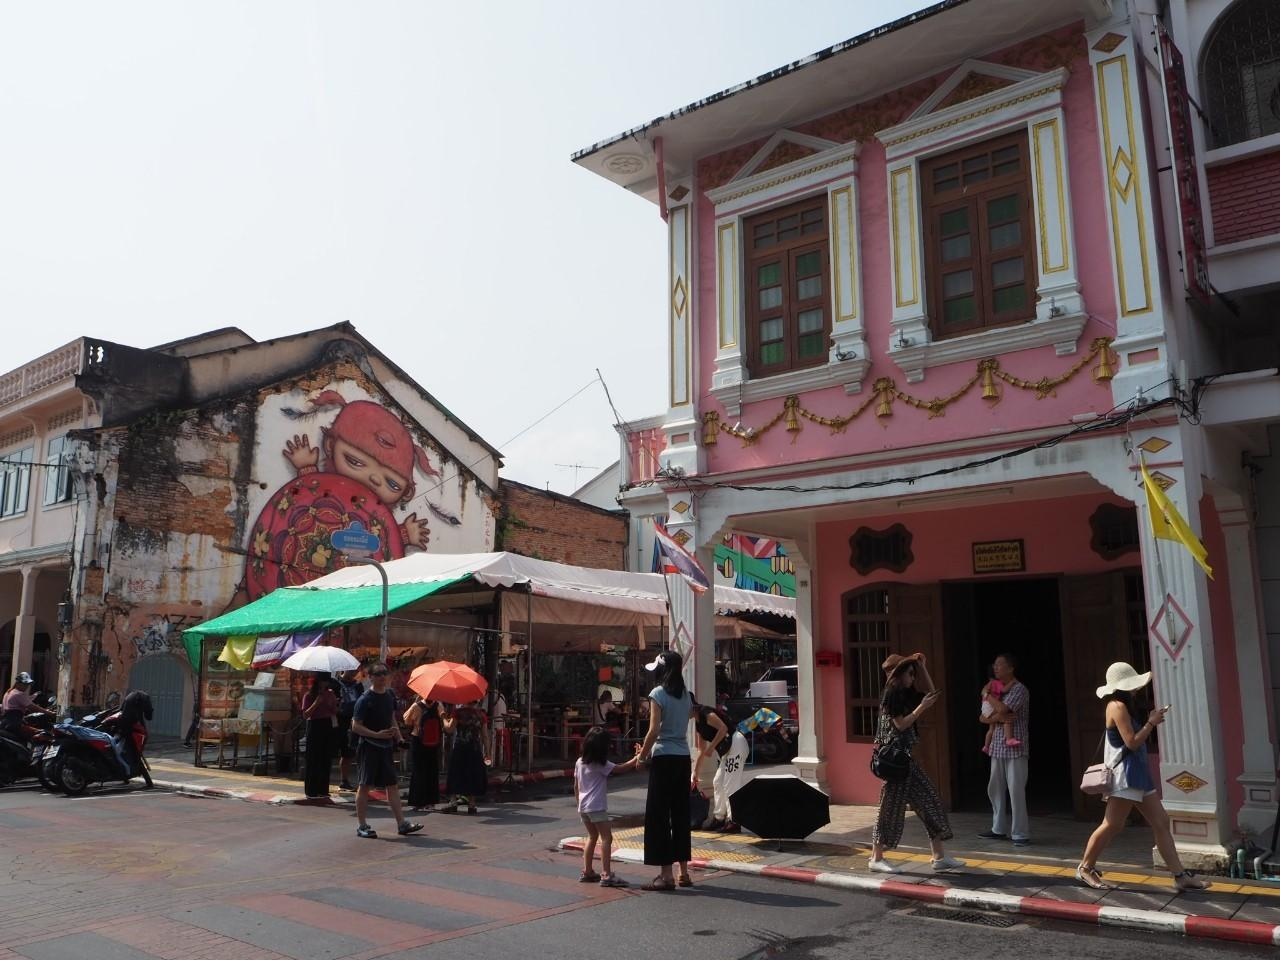 Old Phuket Town has become popular through social media over the last two years. Dusida Worrachaddejchai